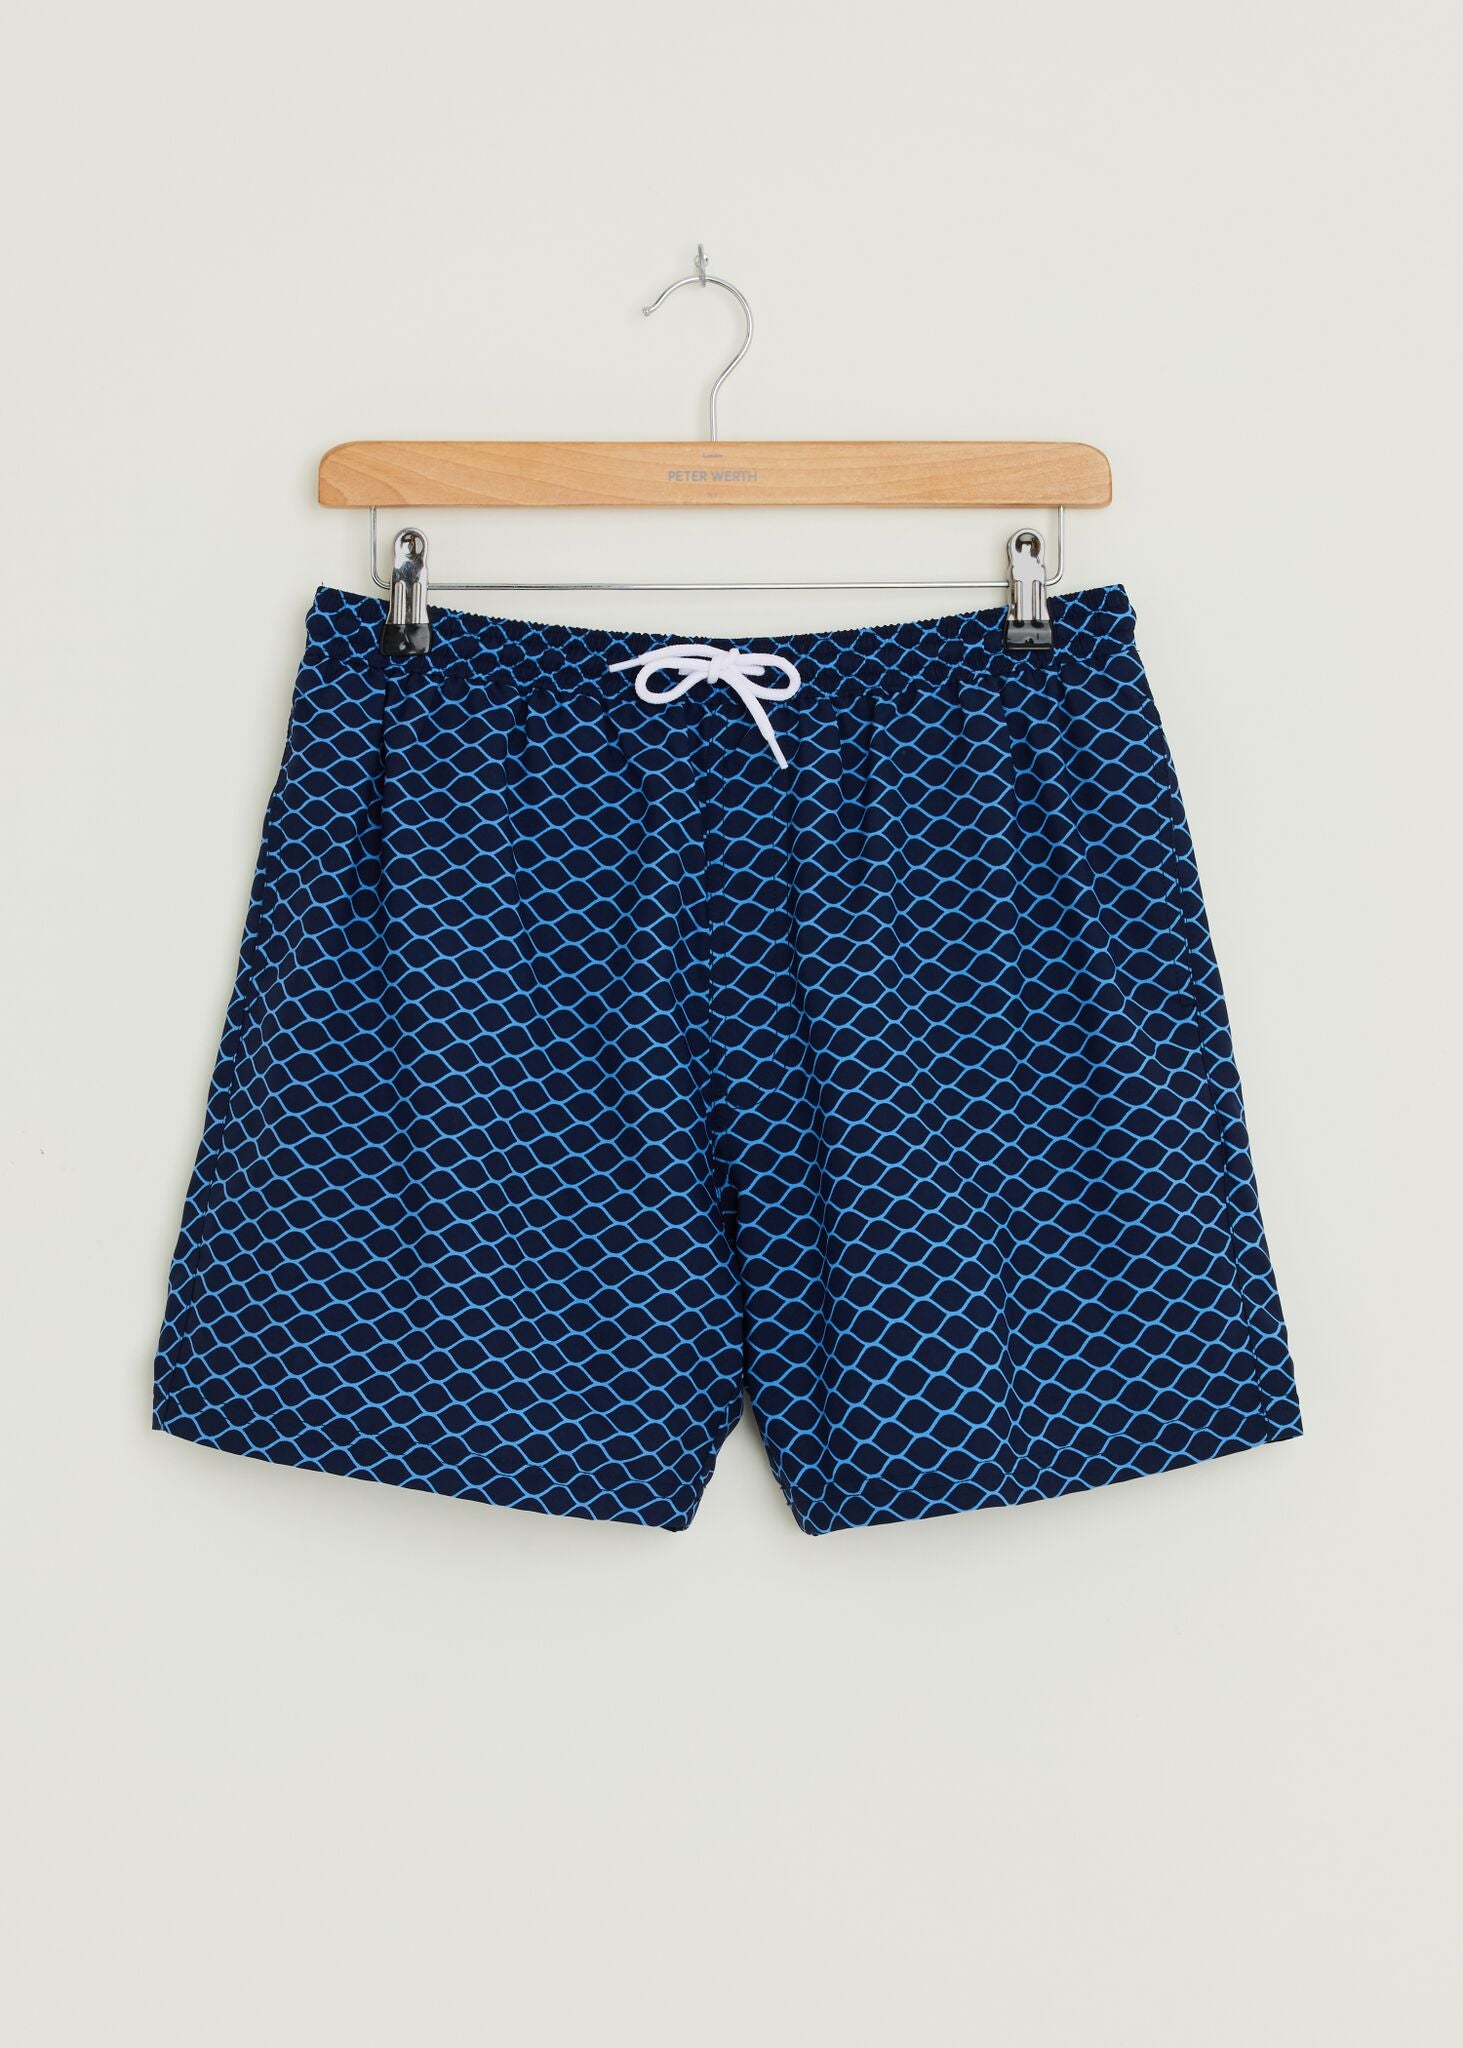 Deptford Swim Shorts - Navy